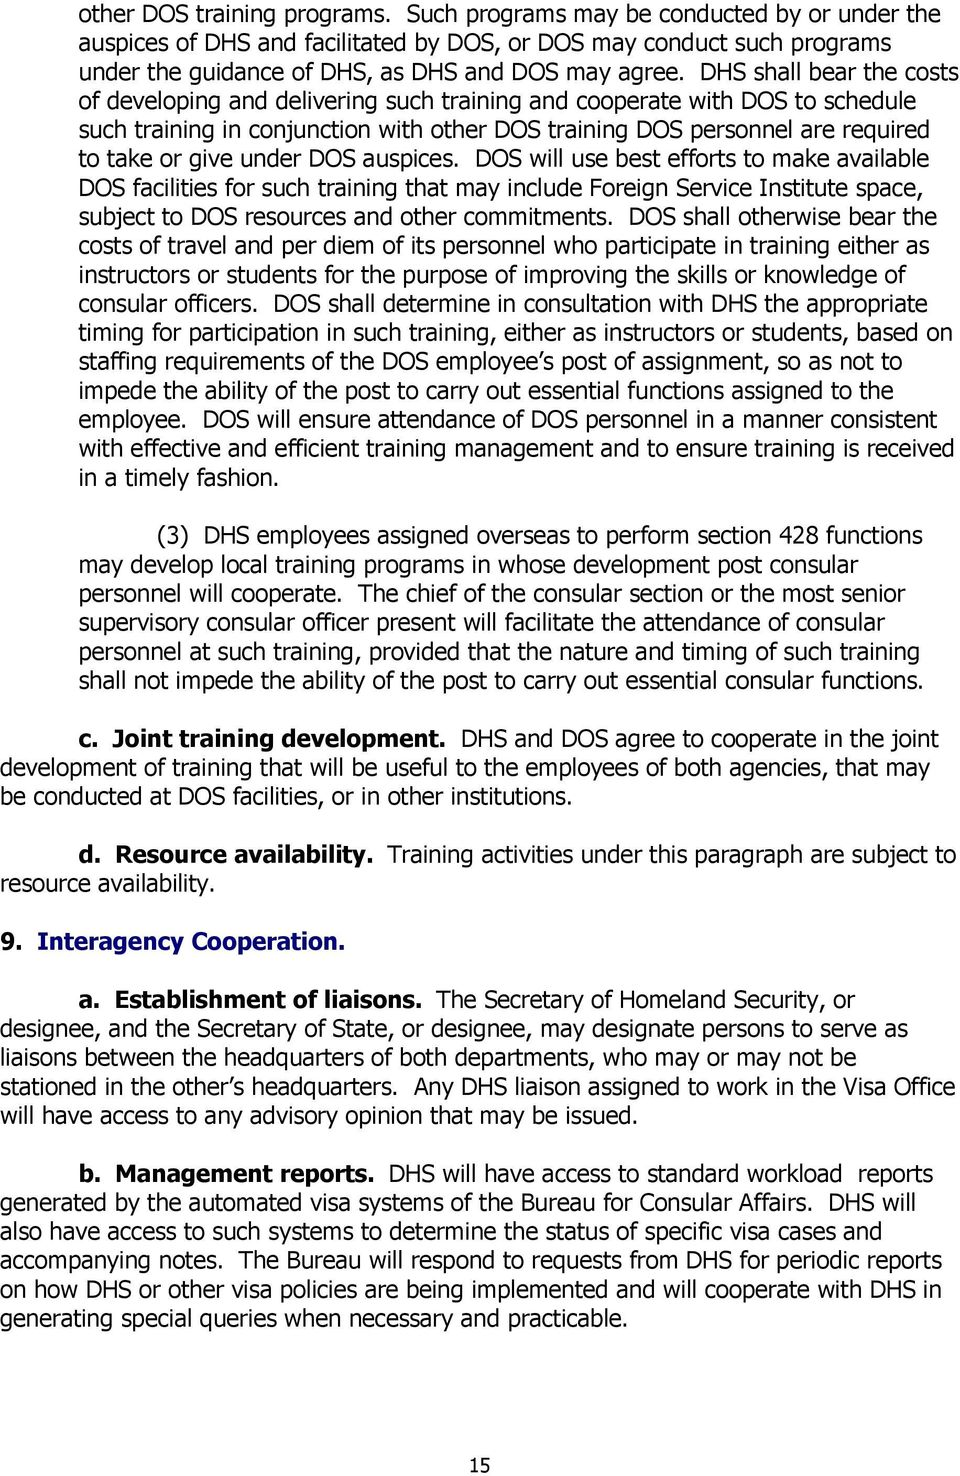 DHS shall bear the costs of developing and delivering such training and cooperate with DOS to schedule such training in conjunction with other DOS training DOS personnel are required to take or give